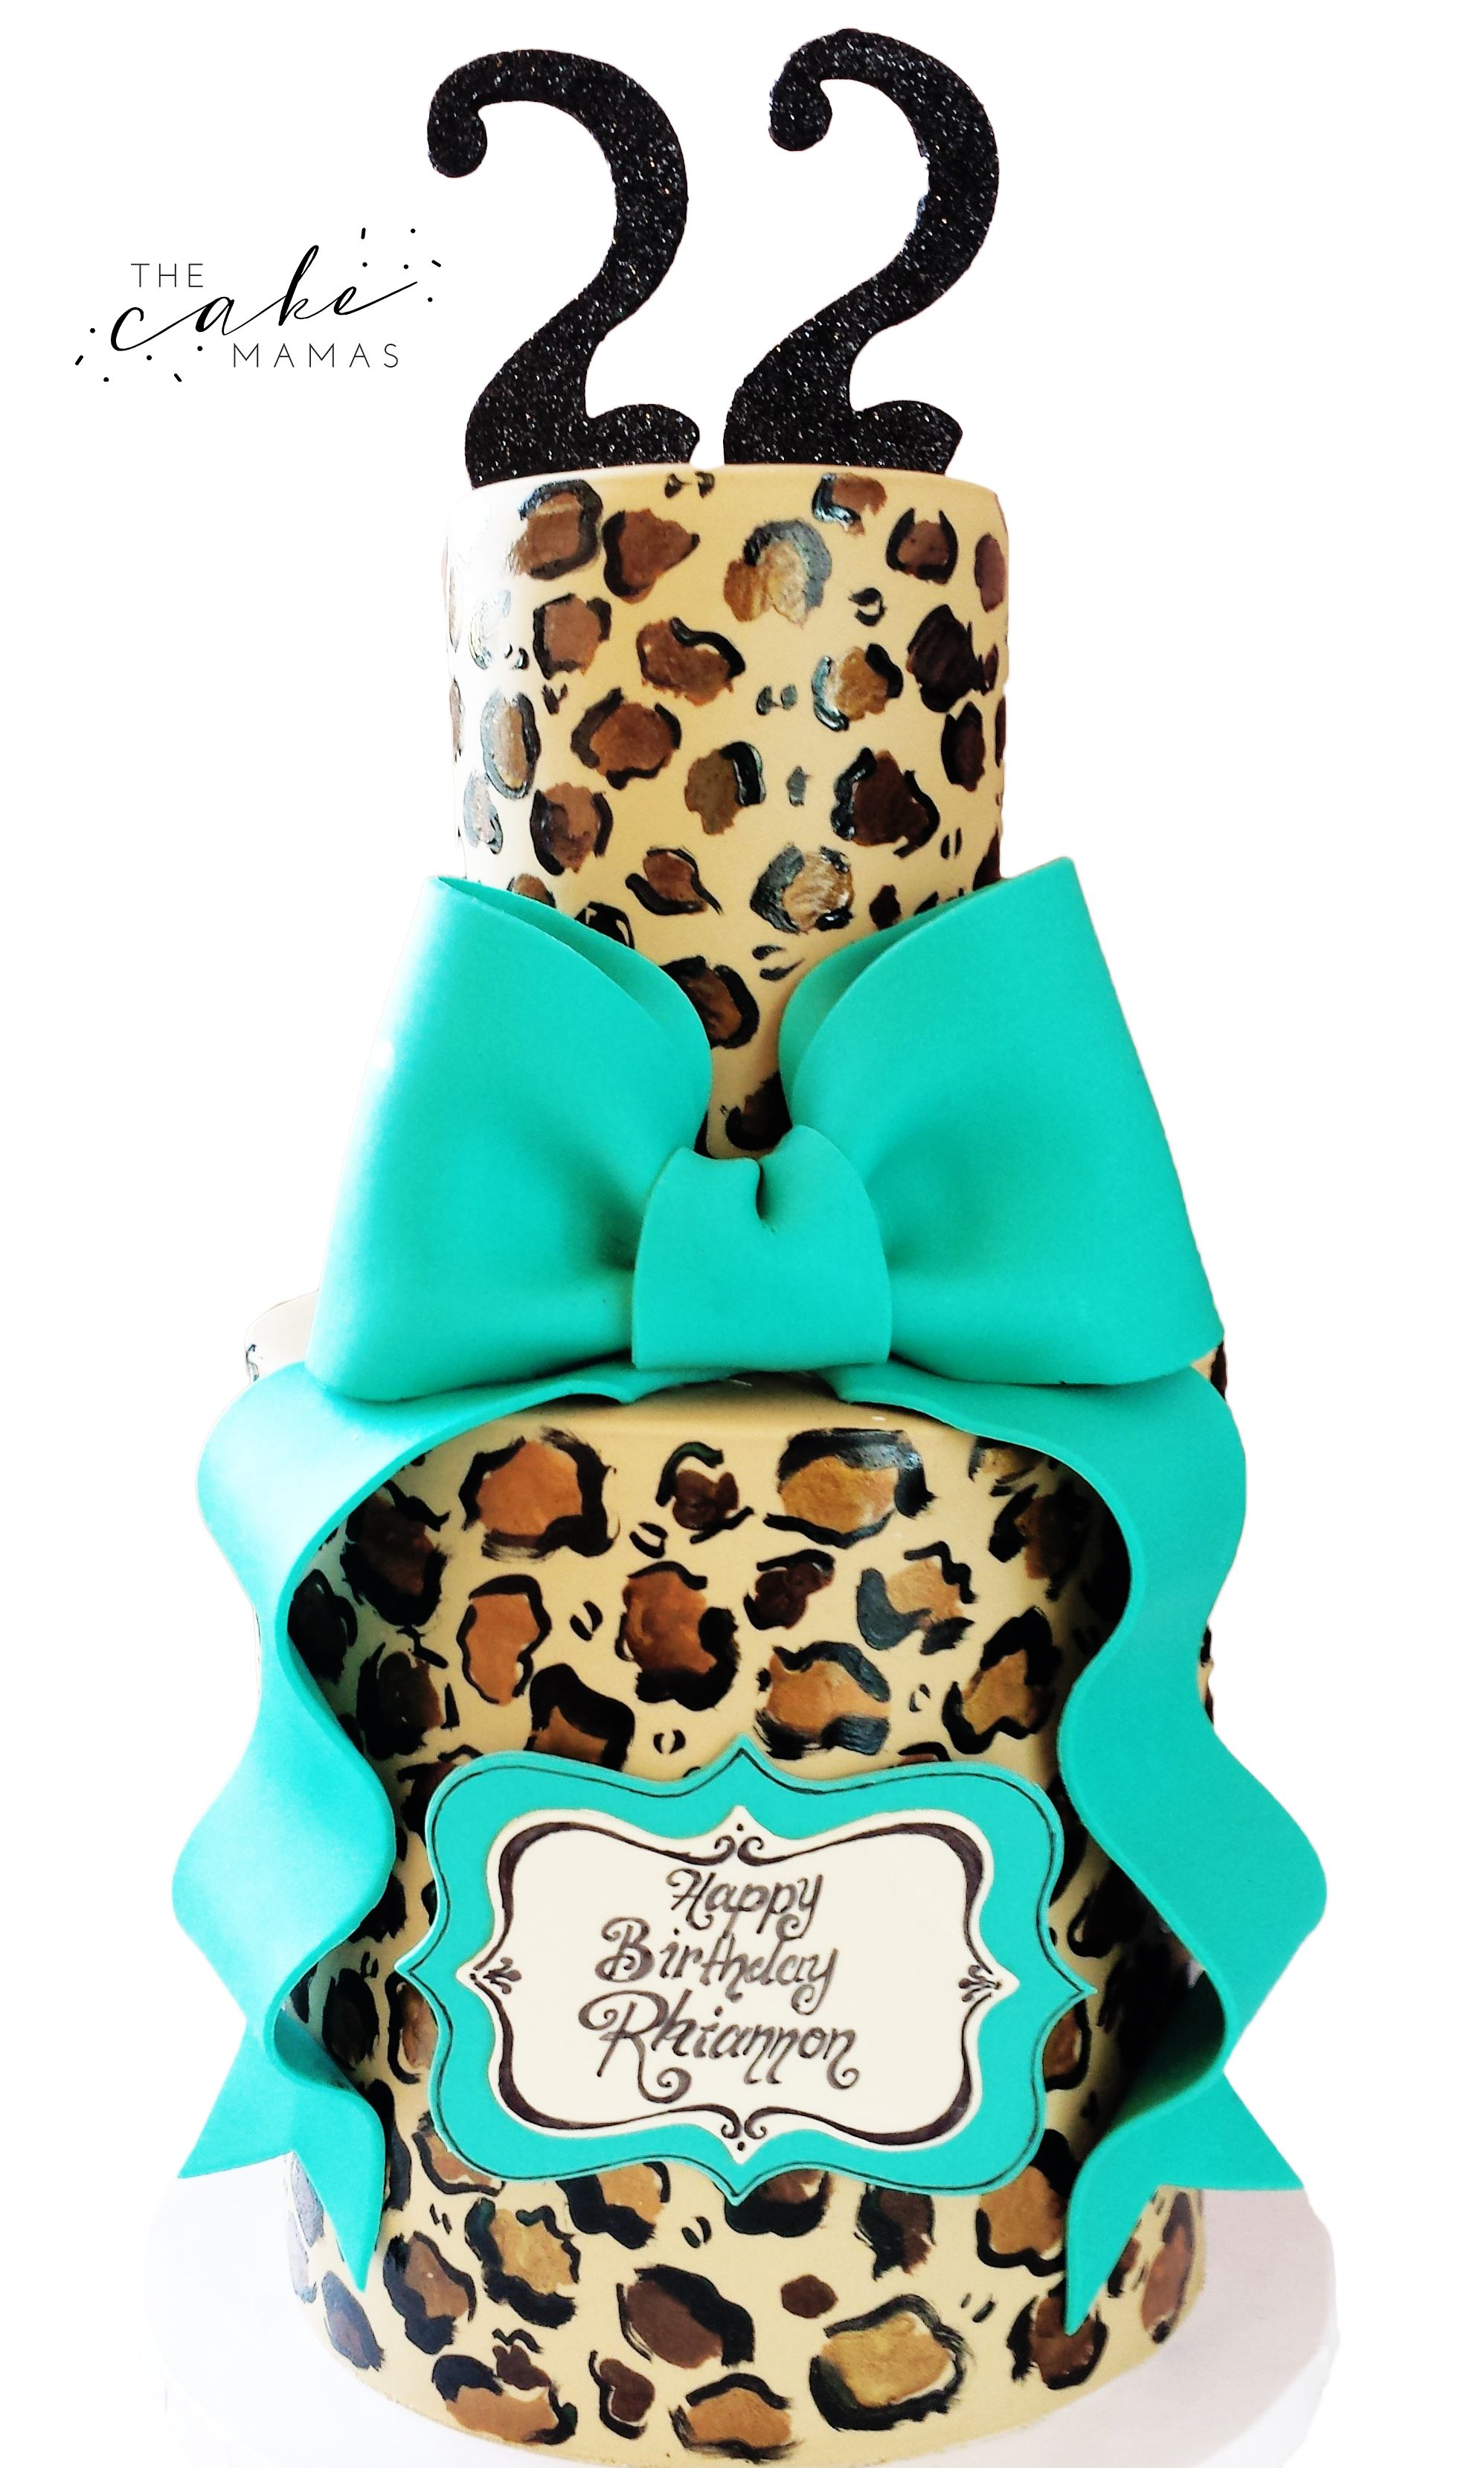 a5cc5e7068bf Cheetah print and Tiffany blue birthday cake! call or email to order your  celebration cake today!  cheetah  Tiffany  tiffanyblue  cheetahprint   birthday ...